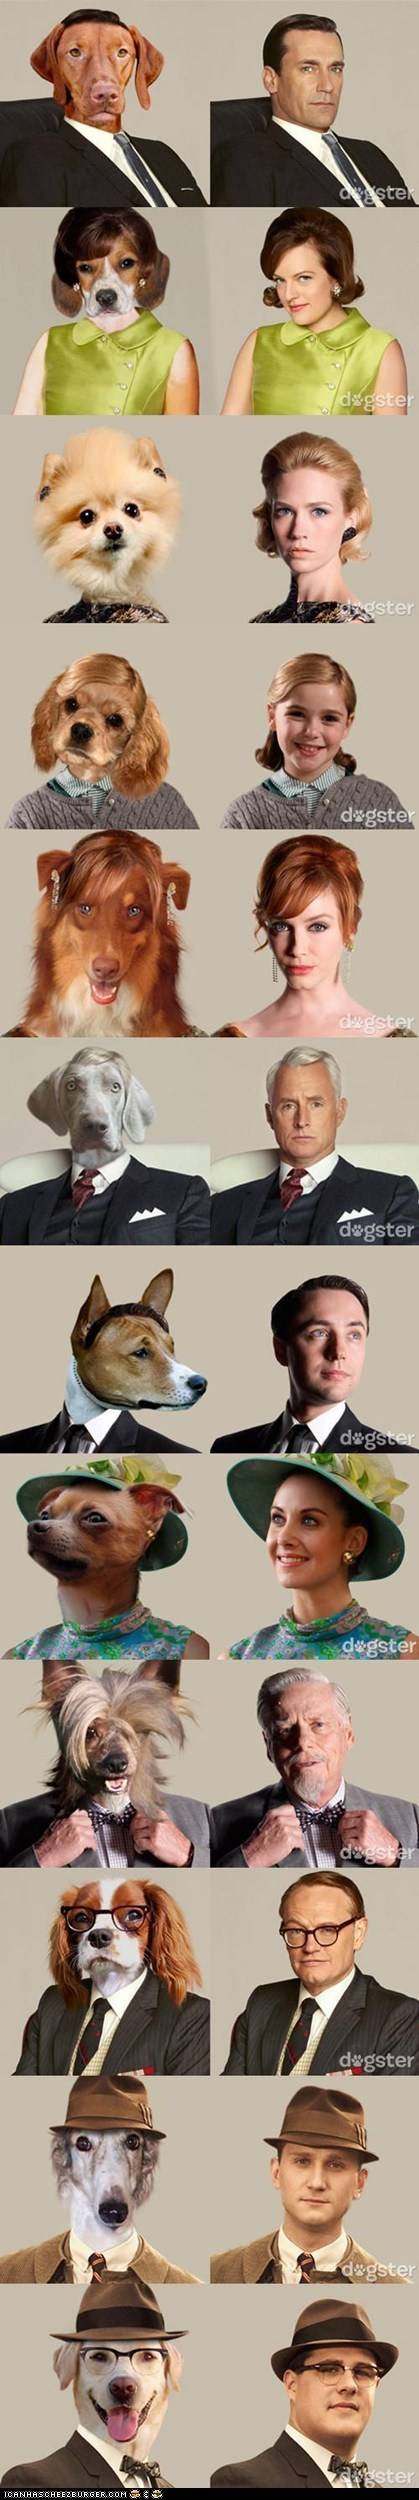 characters,dogs,mad men,multipanel,photoshopped,TV